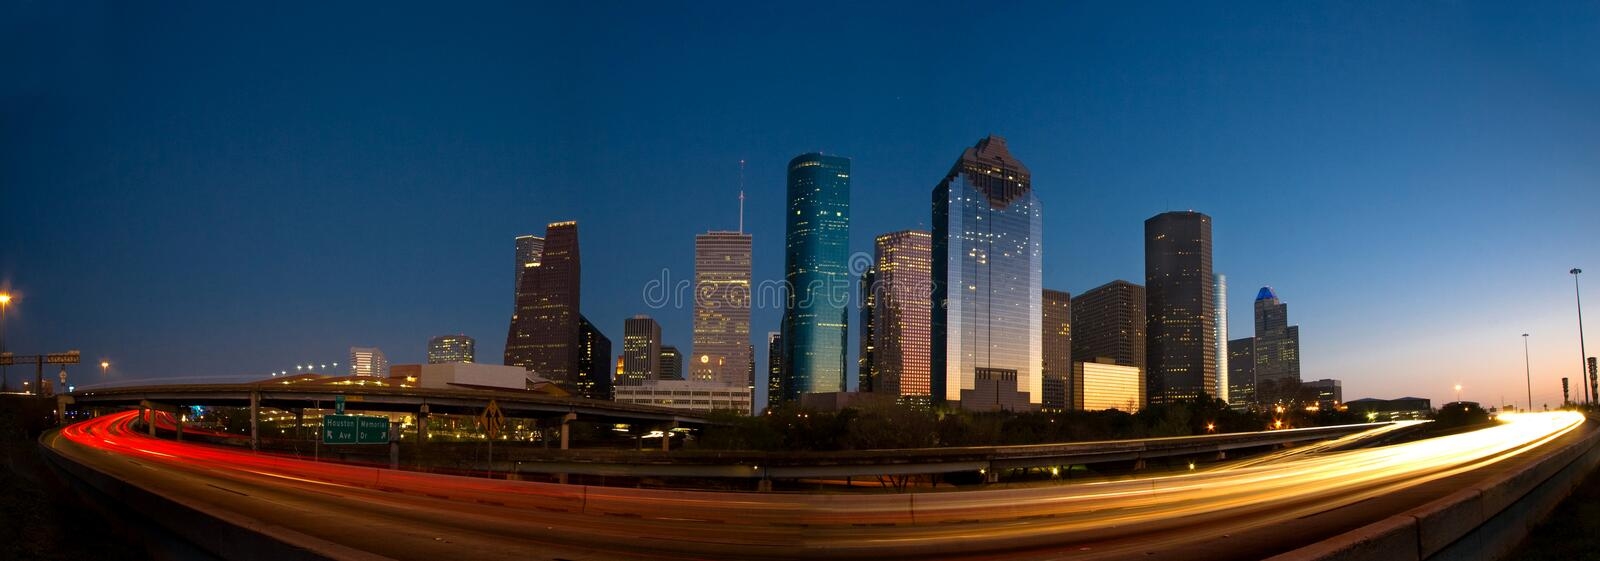 Skyline e tráfego de Houston no por do sol fotografia de stock royalty free